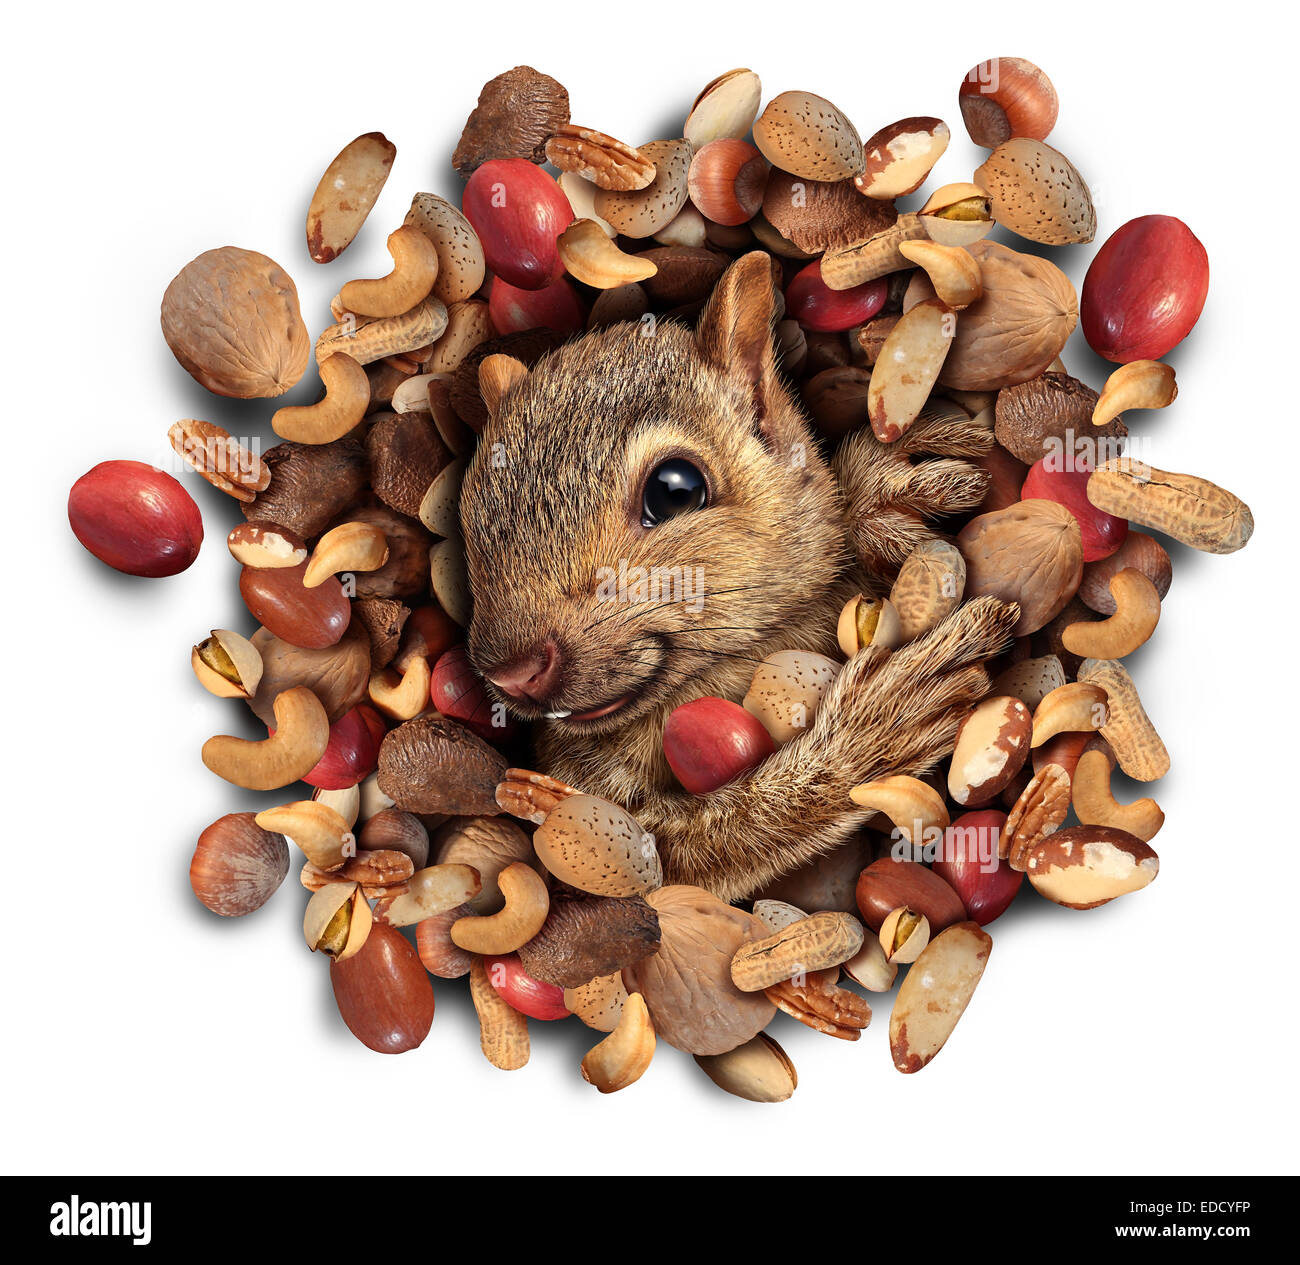 Squirrel nut burst concept as a cute furry rodent emerging from a heap of nuts as a symbol of plentiful food fortune - Stock Image